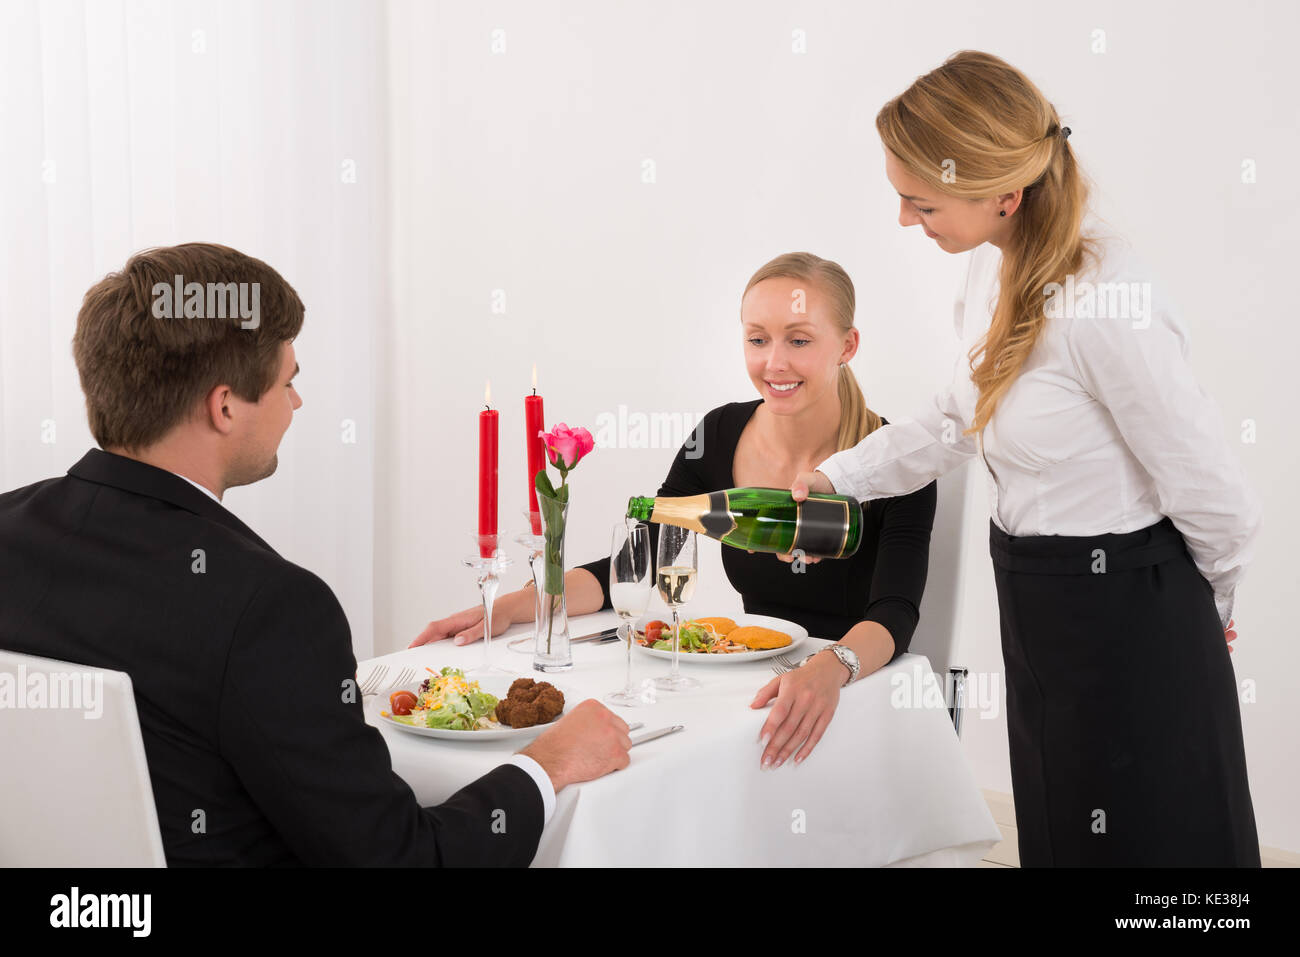 Waiter Serving Food Hotel High Resolution Stock Photography And Images Alamy